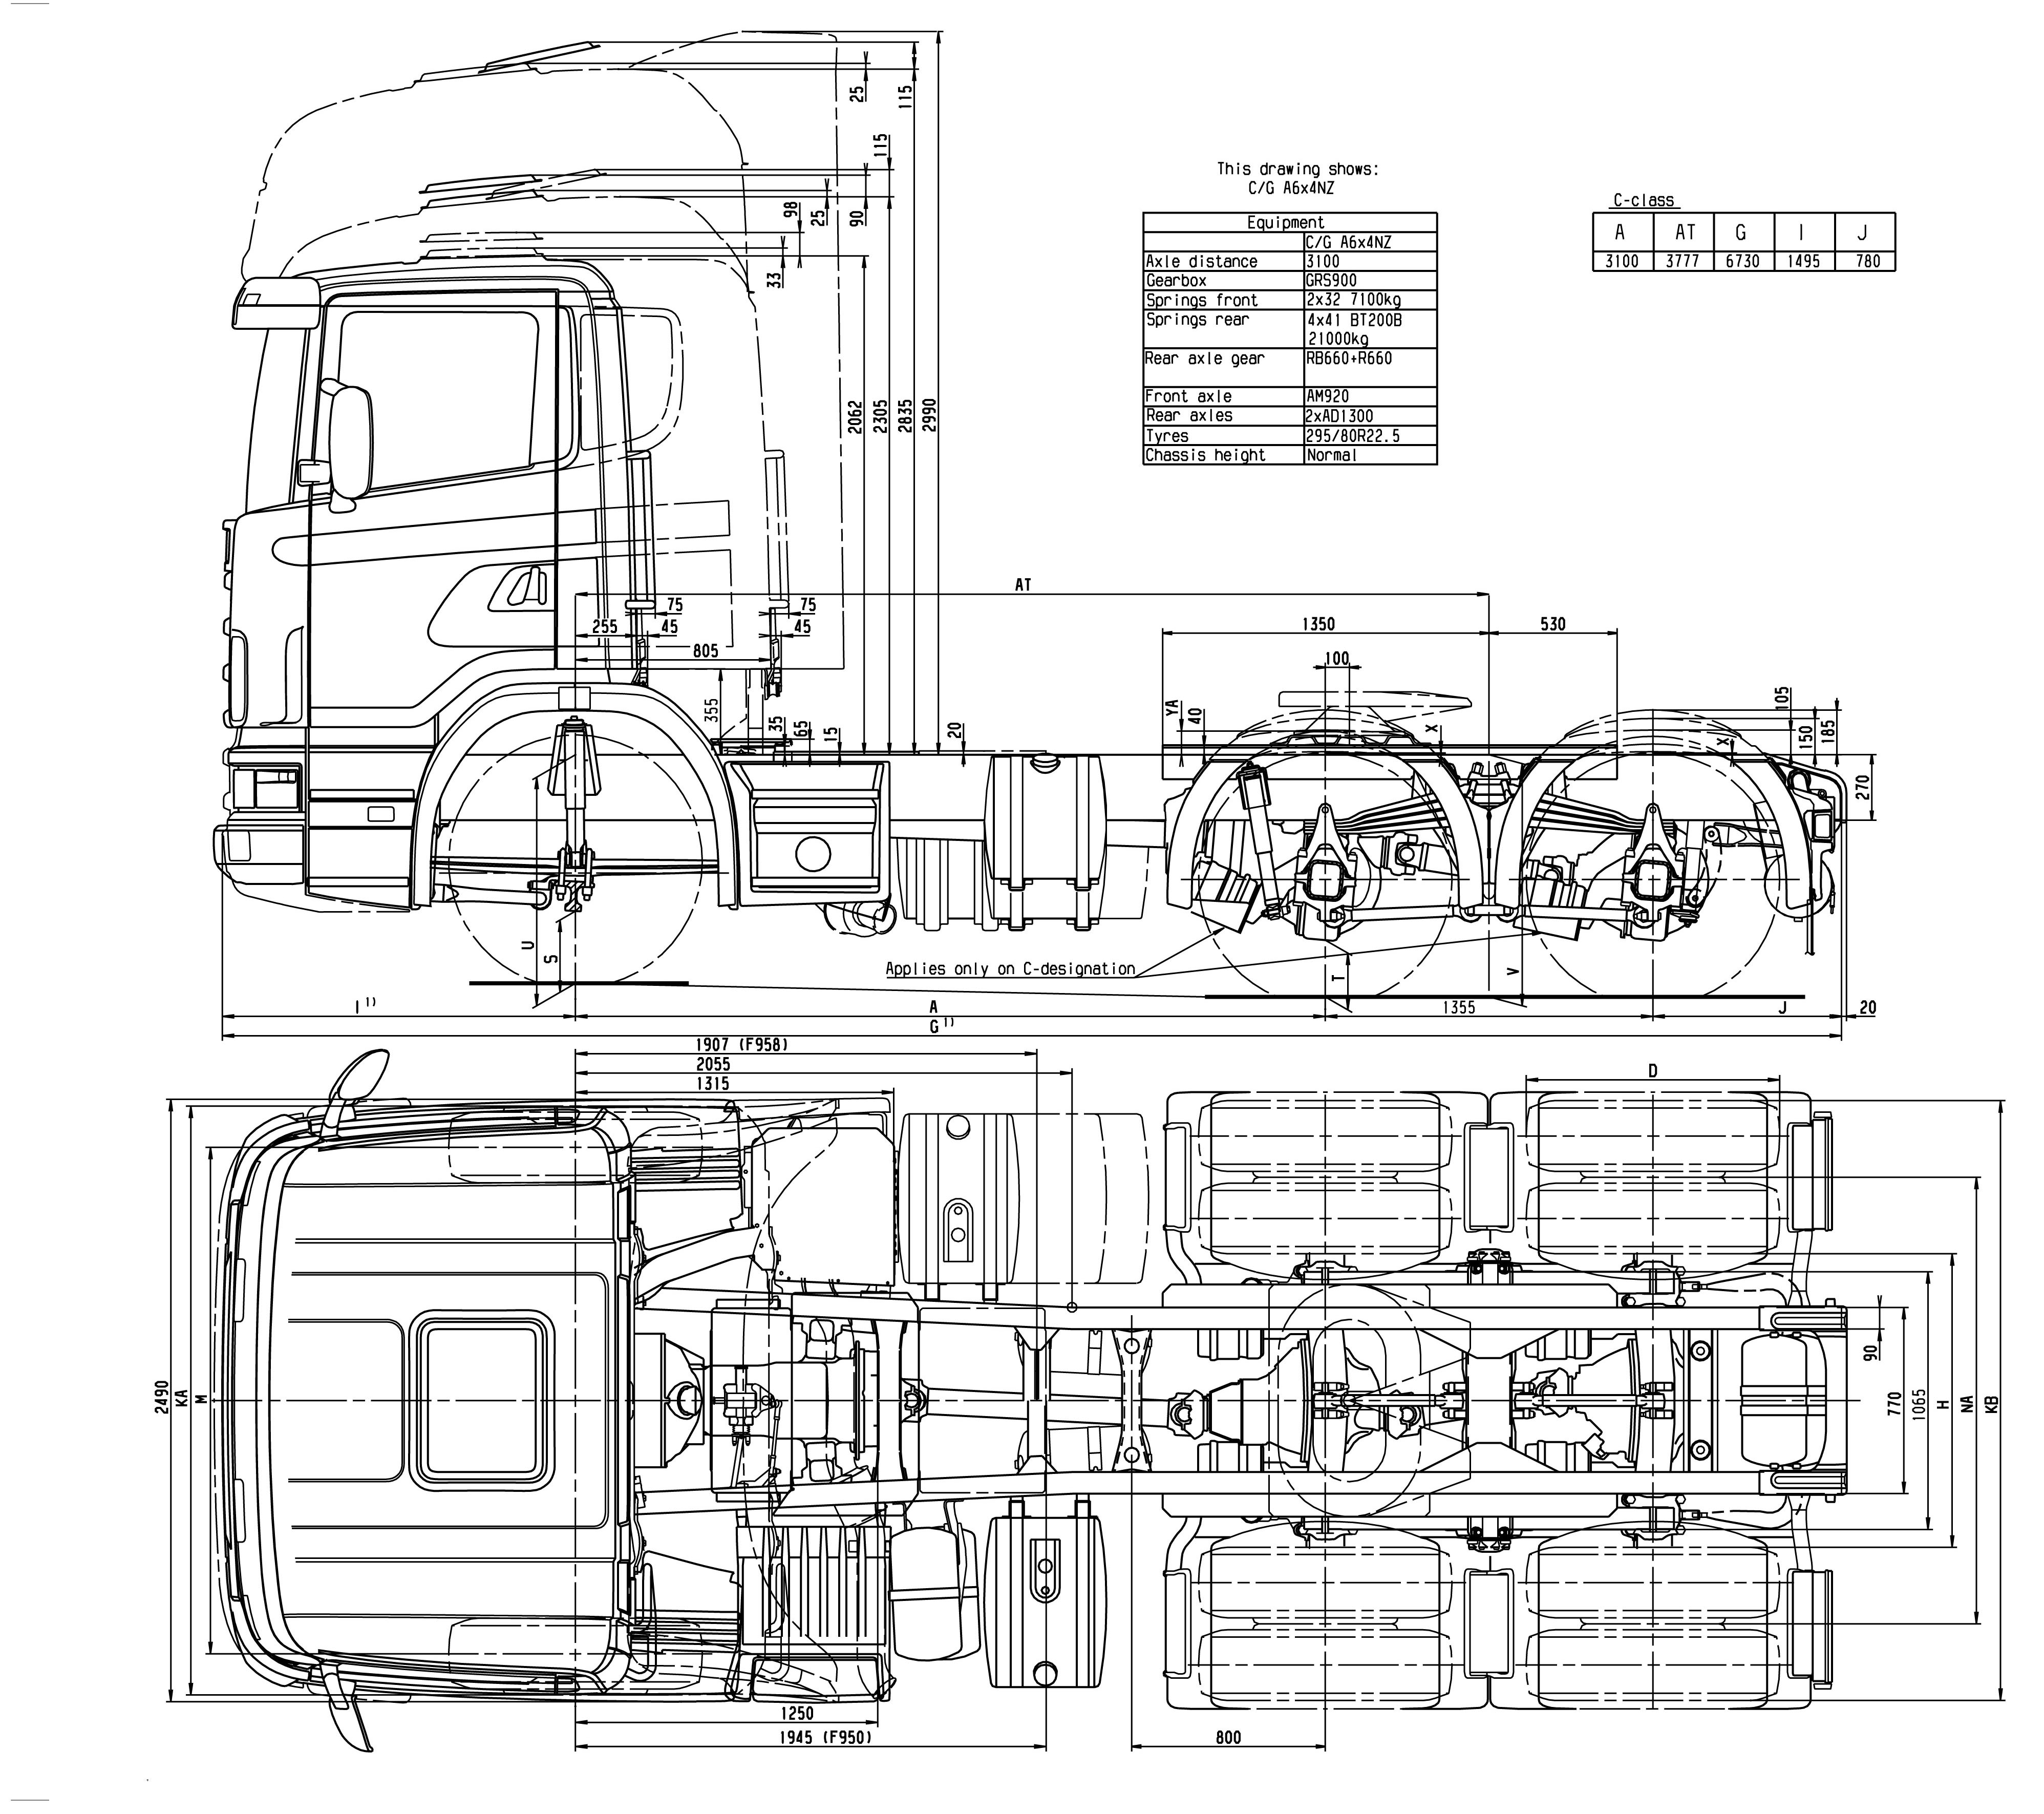 iveco daily radio wiring diagram with Iveco Wiring Diagram Pdf Free Download on Trailer Where Is The Brake Fuse On A 2014 F 250 furthermore Maxima Engine Fuse Box further Renault Clio 2003 Fuse Box Diagram in addition Radio Pedal Car likewise Fuse Box Diagram For 1997 Jeep Cherokee.